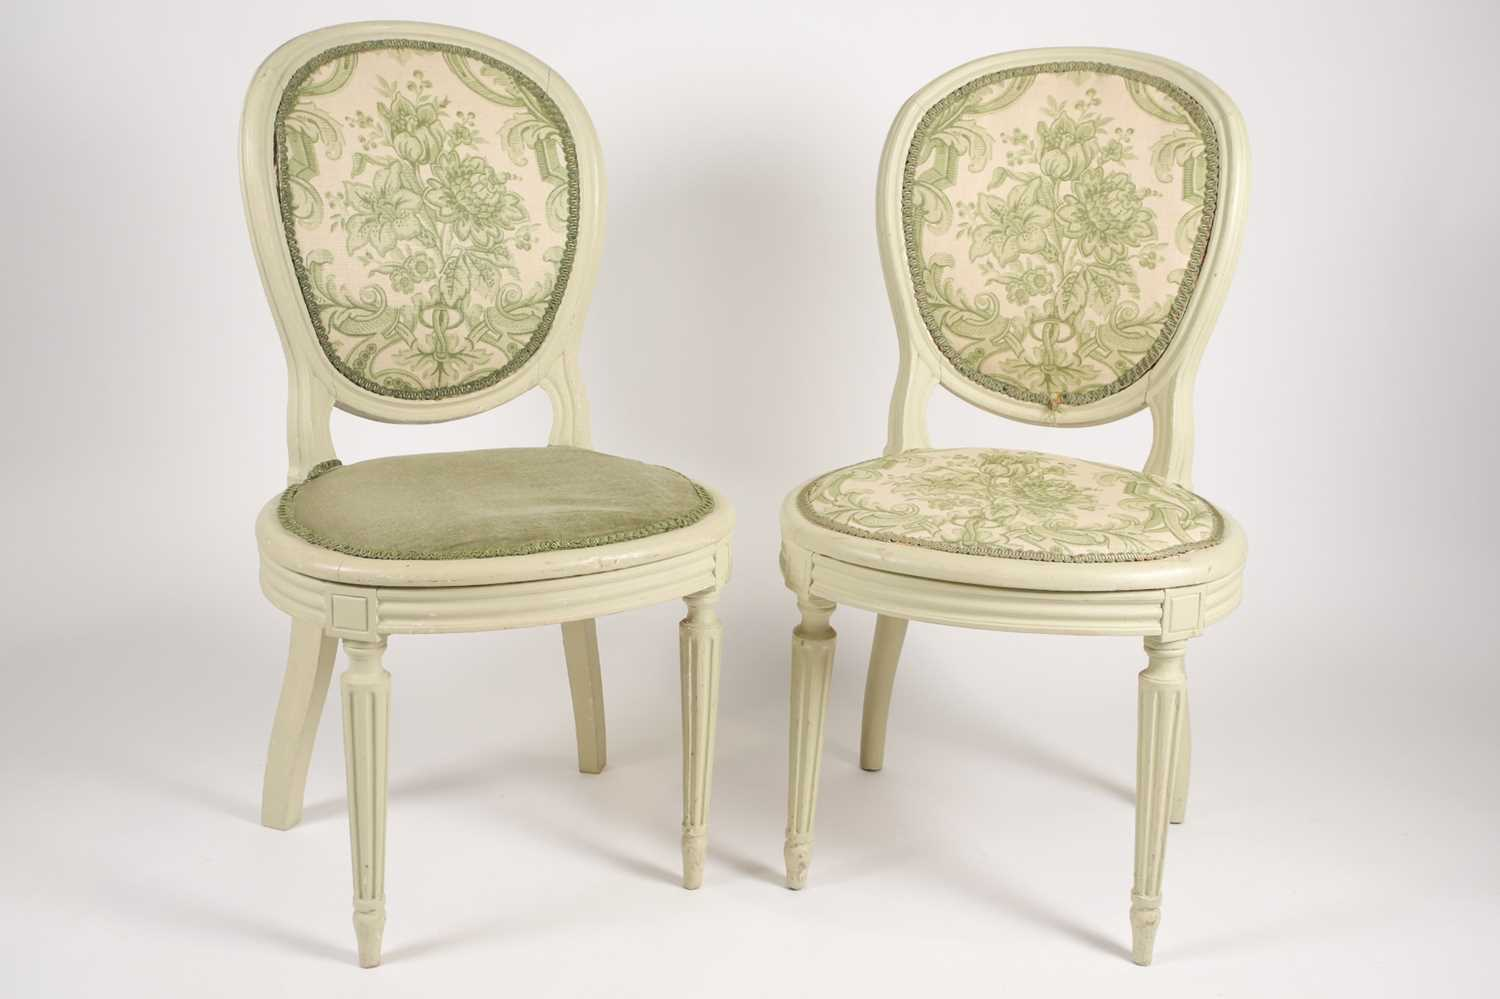 pair of green painted salon/dining chairs made by Waring & Gillow